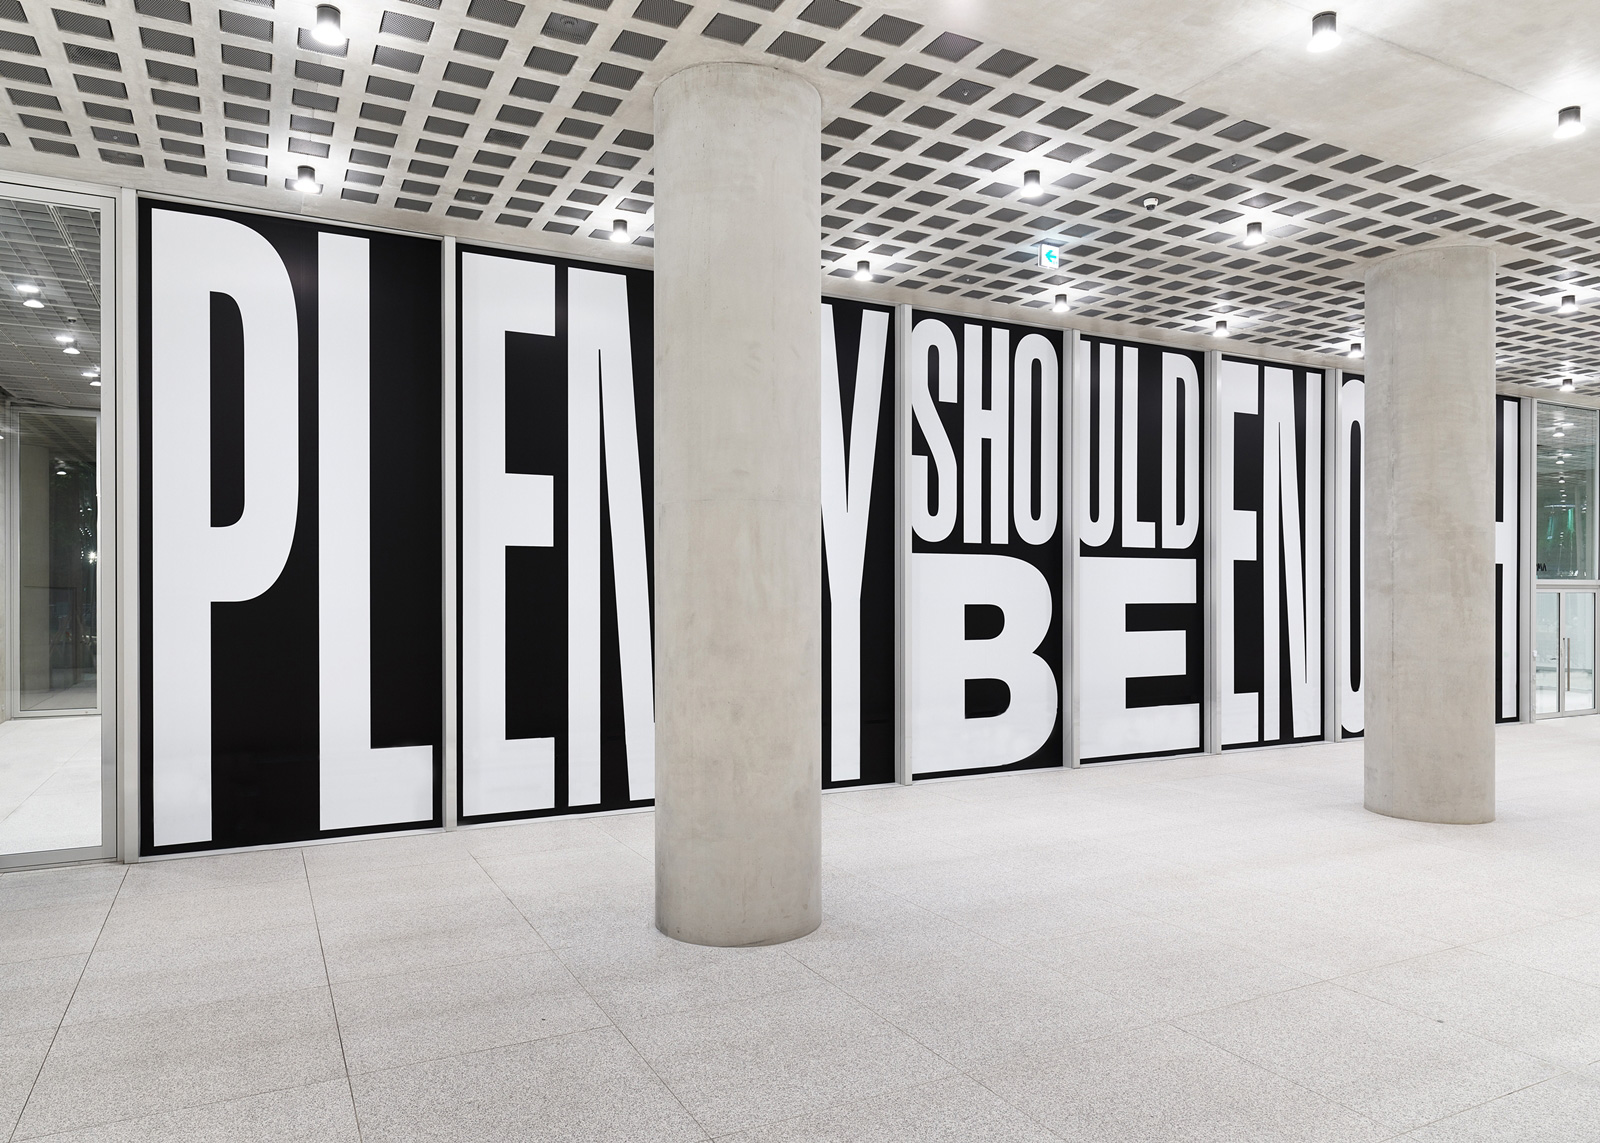 Barbara Kruger, Untitled (Plenty should be enough), 2018, Digital print on vinyl wallpaper, 600 x 2,170 cm | Barbara Kruger | STIRworld